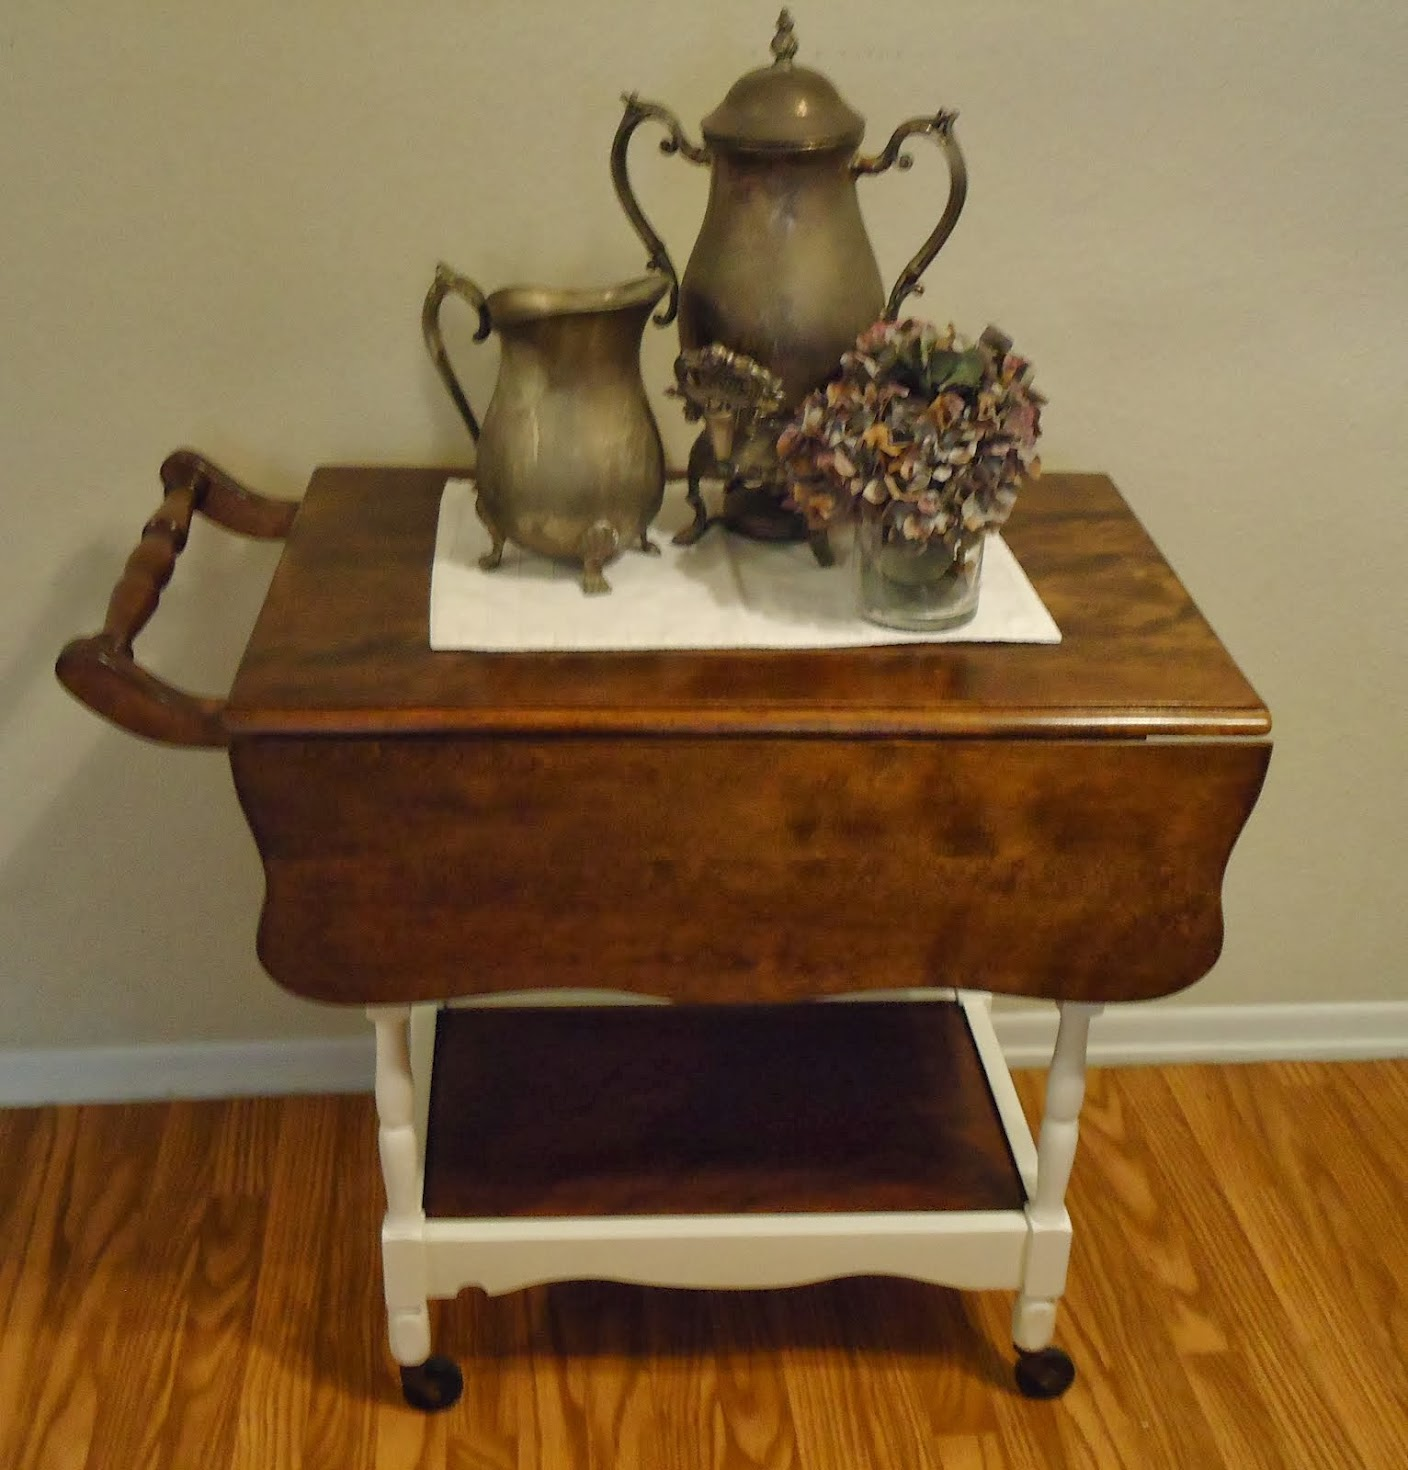 Vintage Drop Leaf Tea Cart with Detachable Serving Tray - SOLD